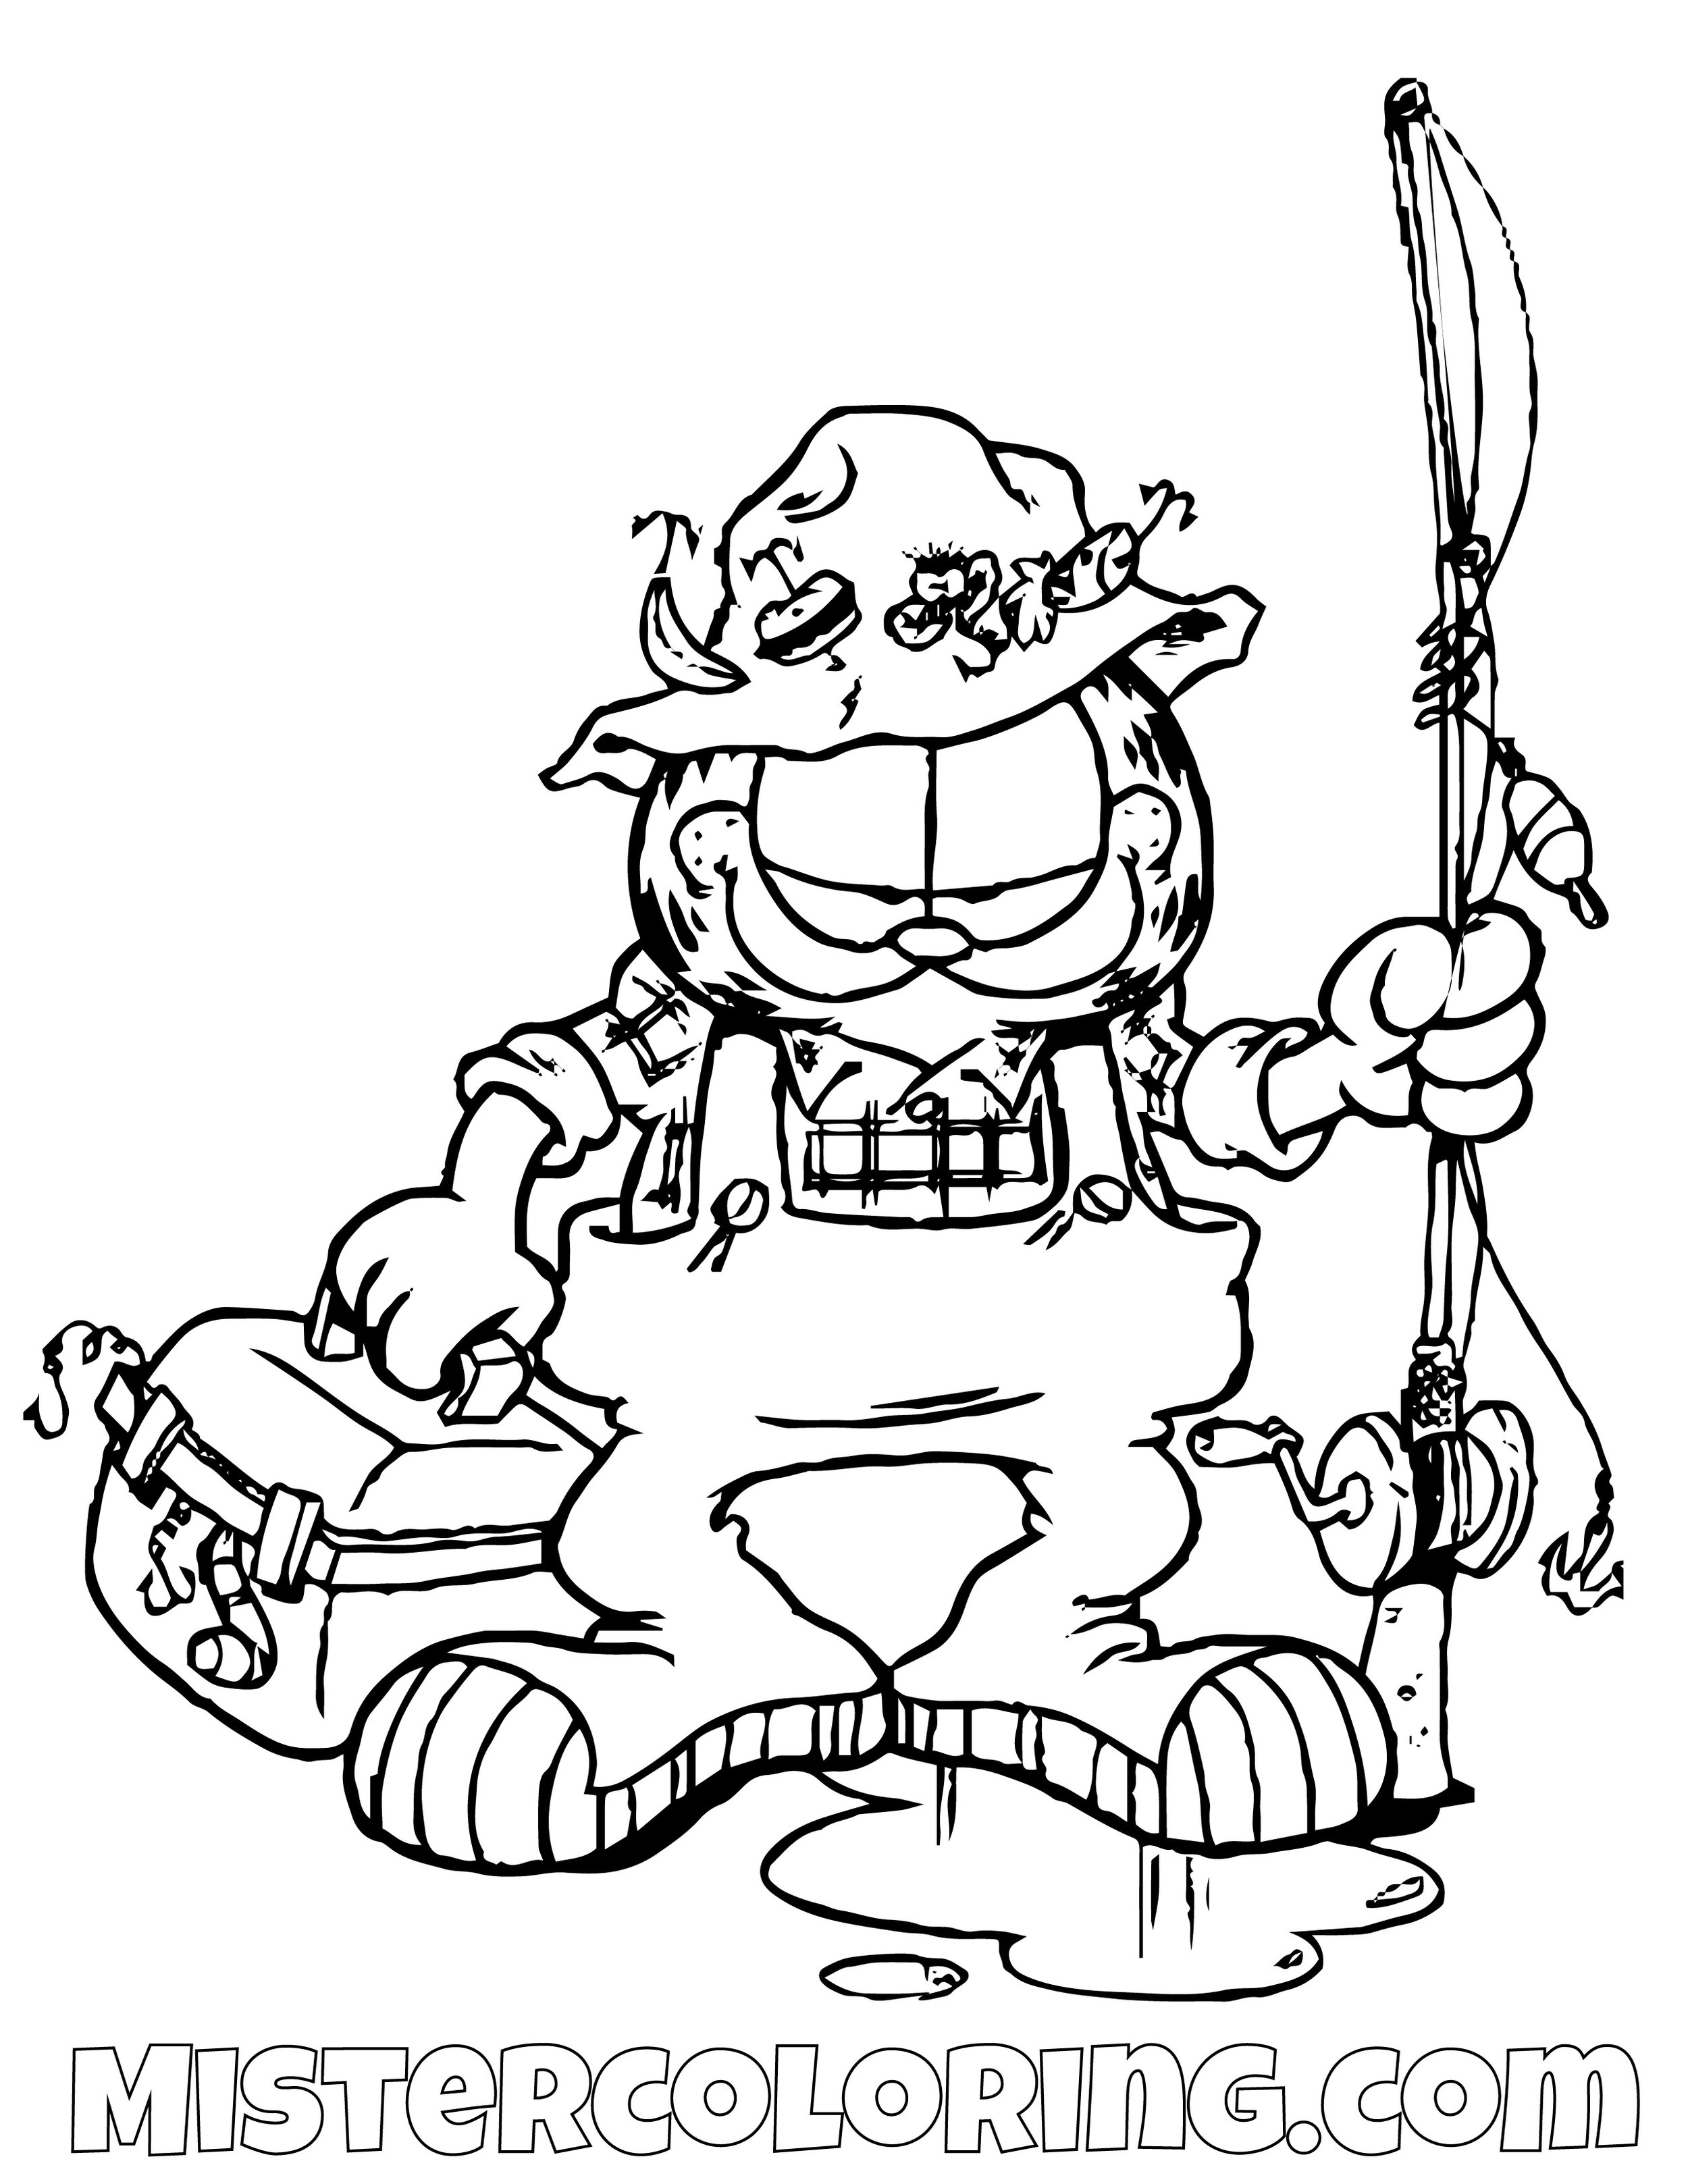 Garfield Getting Ready To Fish Coloring Page